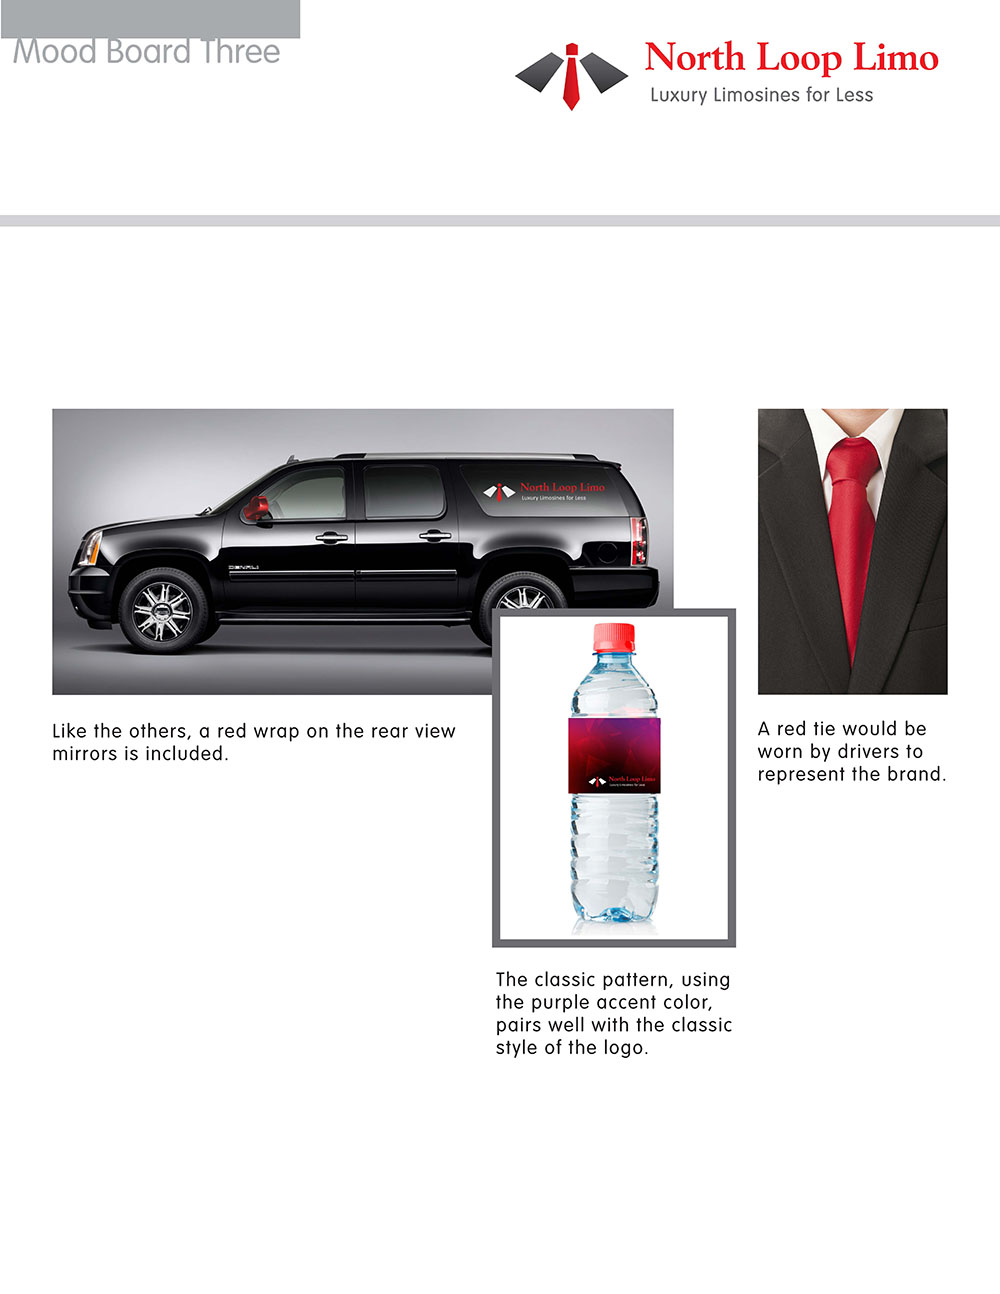 North Loop Limo Branding and Mood Boards